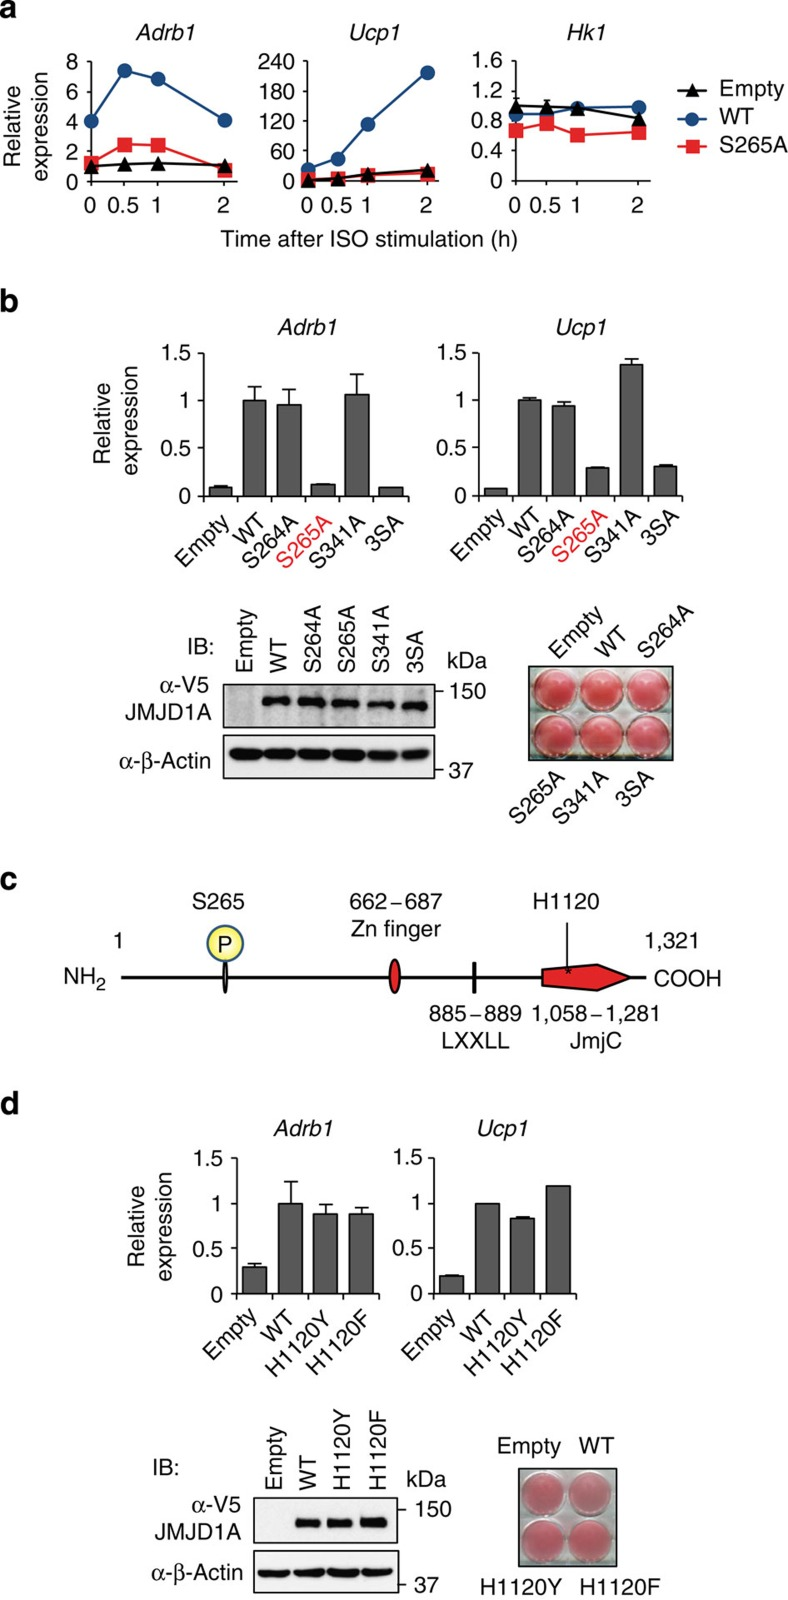 Phosphorylation of JMJD1A at S265 is crucial for β-adrenergic-induced gene transcriptions. ( a ) ISO-induced Adrb1 and Ucp1 mRNA levels in iBAT sh s stably expressing WT- or S265A-hJMJD1A or empty vector were measured by RT-qPCR. The mRNA values are depicted relative to mRNA in iBAT sh s transduced with empty vector on day 8 of differentiation before ISO treatment (0 h), which are arbitrarily defined as 1. ( b ) Adrb1 and Ucp1 mRNA levels in WT or serine to alanine mutants (S264A, S265A, S341A or, 3SA) JMJD1A expressing iBAT sh s measured by RT-qPCR after 1 h ISO treatment (top panel). 3SA represents all three mutations of S264A, S265A and S341A. Data were presented as fold change relative to WT-hJMJD1A-iBAT sh s after normalized to cyclophilin. Immunoblot (IB) analysis for WT and various mutant JMJD1A proteins and Oil Red O (ORO) staining (bottom panel). ( c ) Schematic representation of the domain architecture of hJMJD1A. Phosphorylation site at S265 and Fe(II) binding site at H1120 are shown. ( d ) Comparable ISO-induced gene expressions of Adrb1 and Ucp1 in WT and demethylase dead JMJD1A mutants expressing iBAT sh s. RT-qPCR was performed to quantify mRNA levels of Adrb1 and Ucp1 genes in WT-, H1120Y- or H1120F-hJMJD1A- iBAT sh s treated with ISO for 1 h (top panel). Data were presented as fold change relative to WT-hJMJD1A-iBAT sh s. IB analysis and ORO in the indicated iBATs (bottom panel). Data are presented as mean±s.e.m. of three technical replicates ( a , b , d ) (error bars are too tiny to see in some figures). Uncropped images of the blots ( b , d ) are shown in Supplementary Fig. 11 .